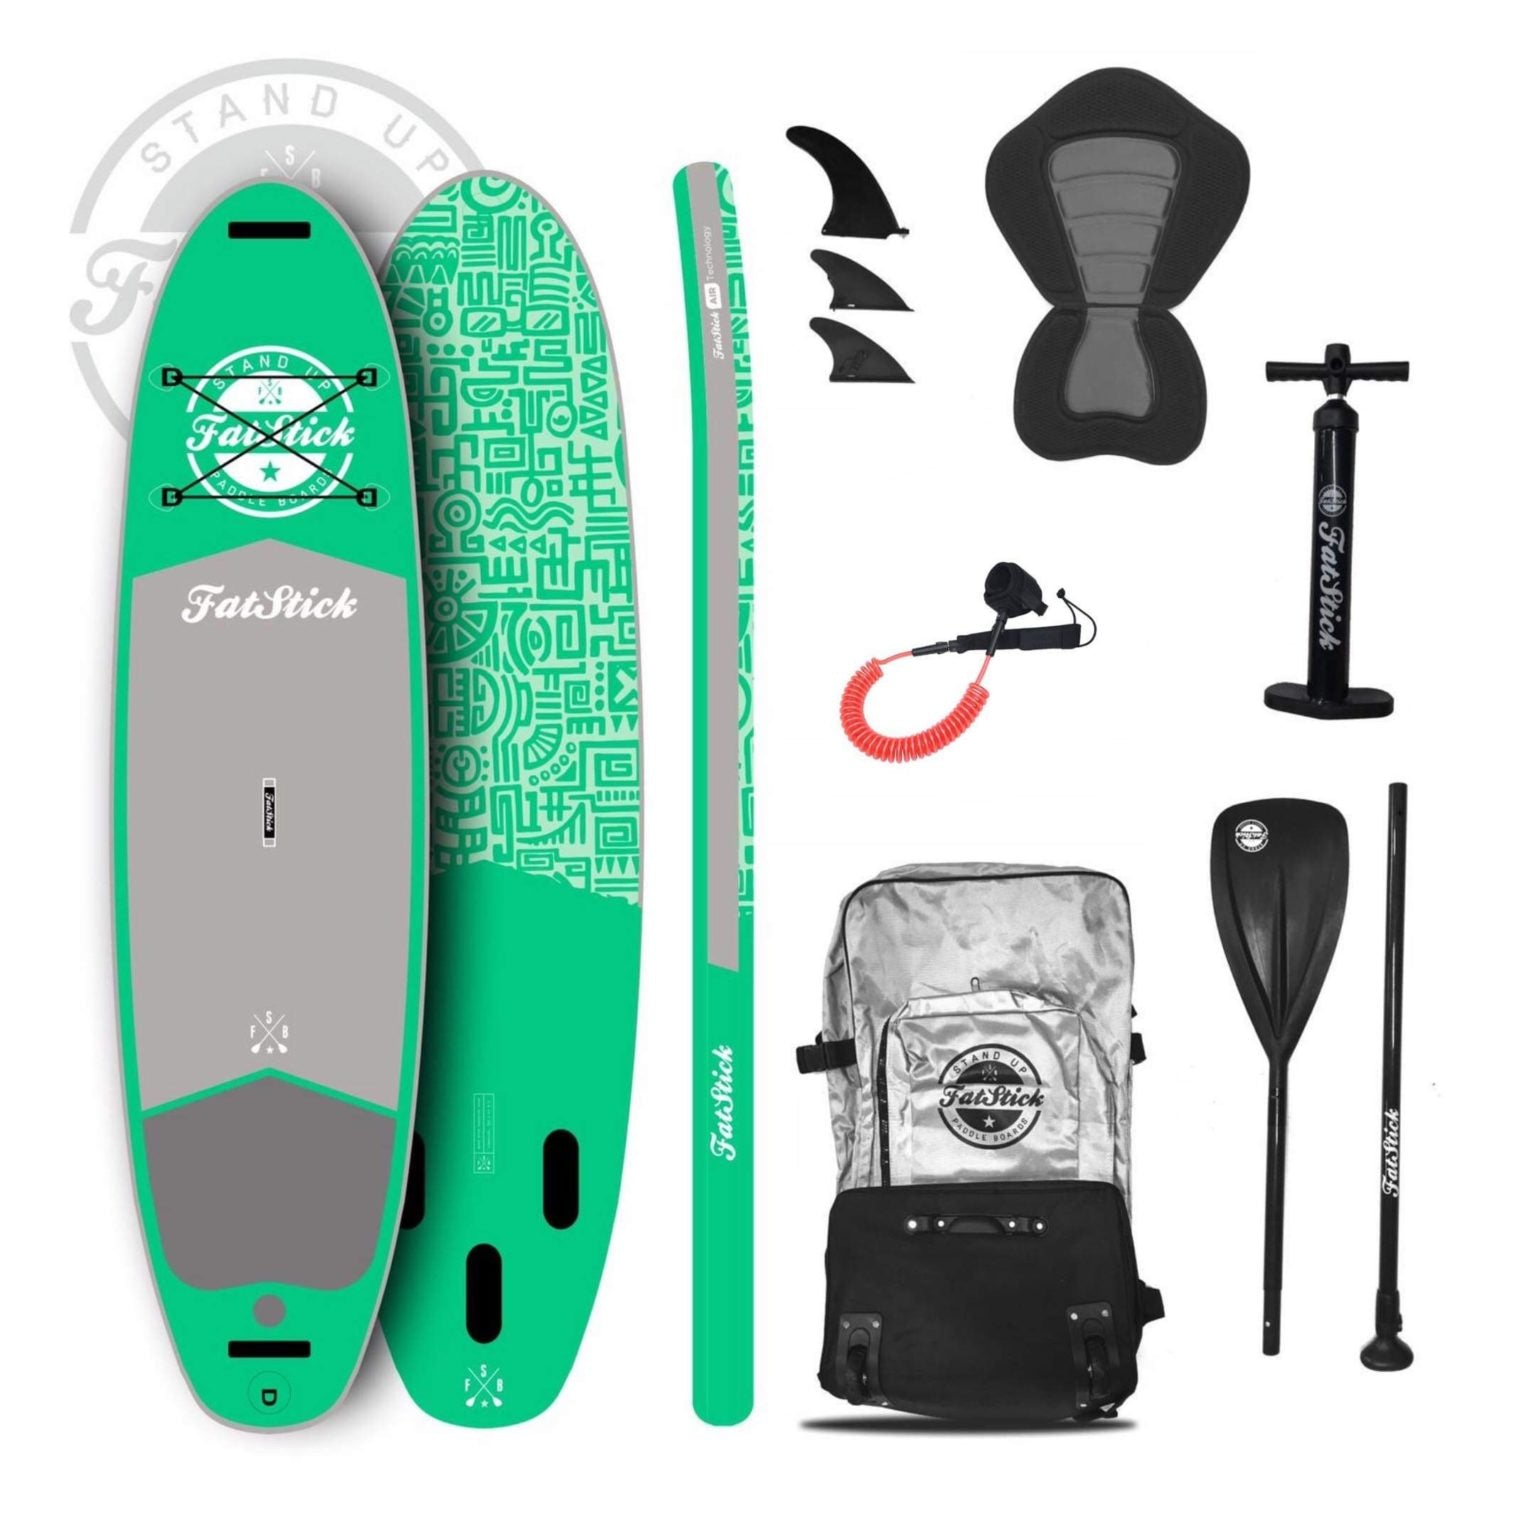 Fatstick Snot Rocket iSUP package complete with board, wheeled bag, leash, kayak seat, pump, paddle, fins and repair kit.